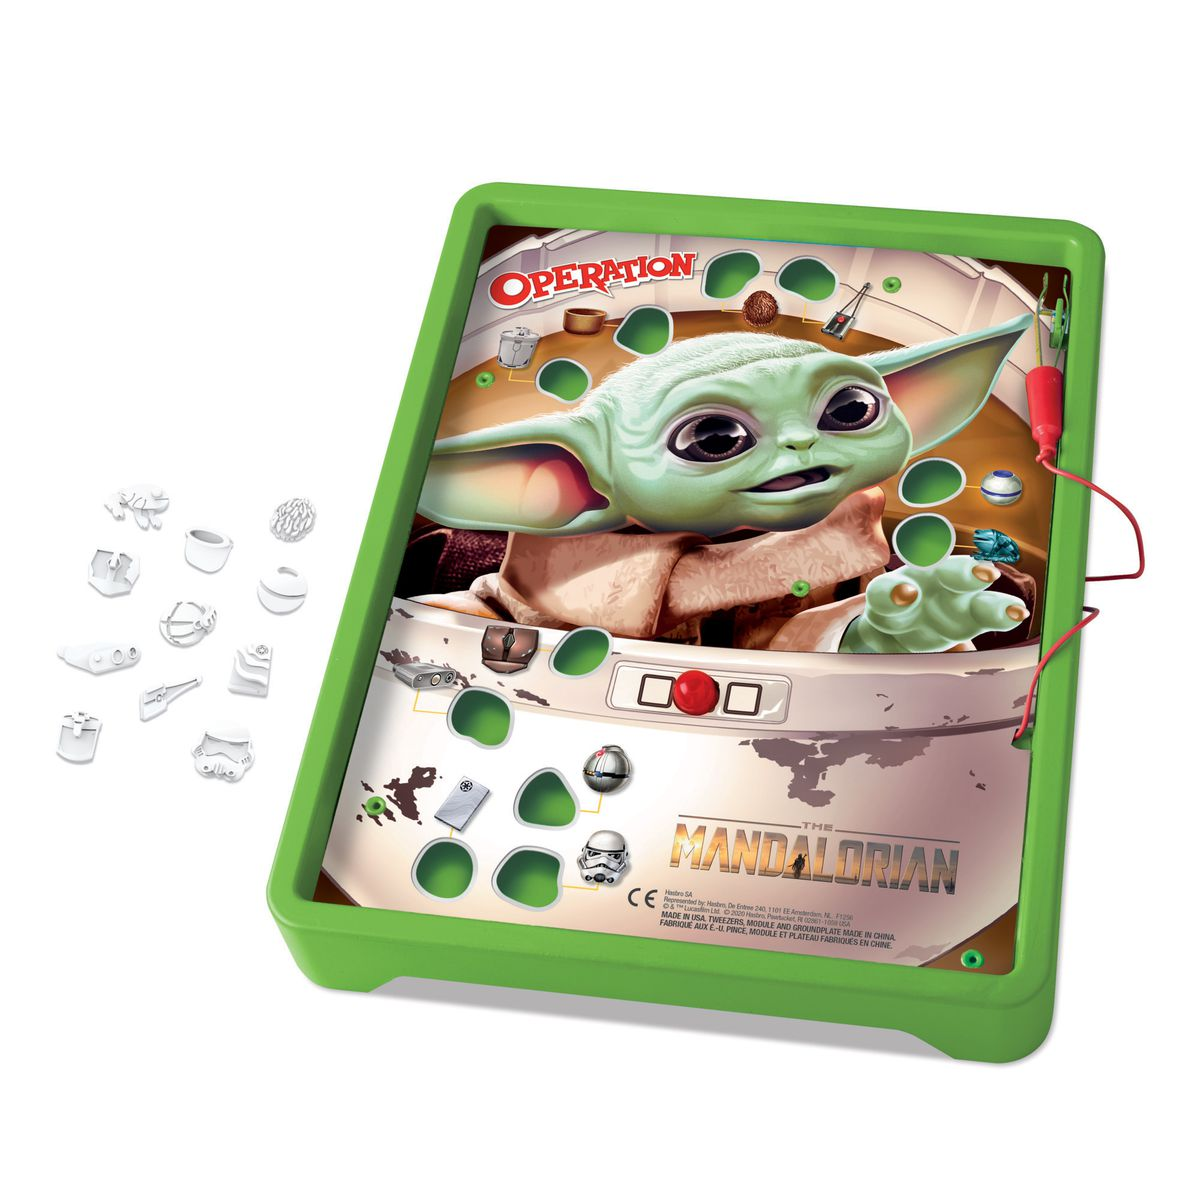 A picture of the game board itself shows players taking items from Baby Yoda, not removing them physically from his hairy green body.